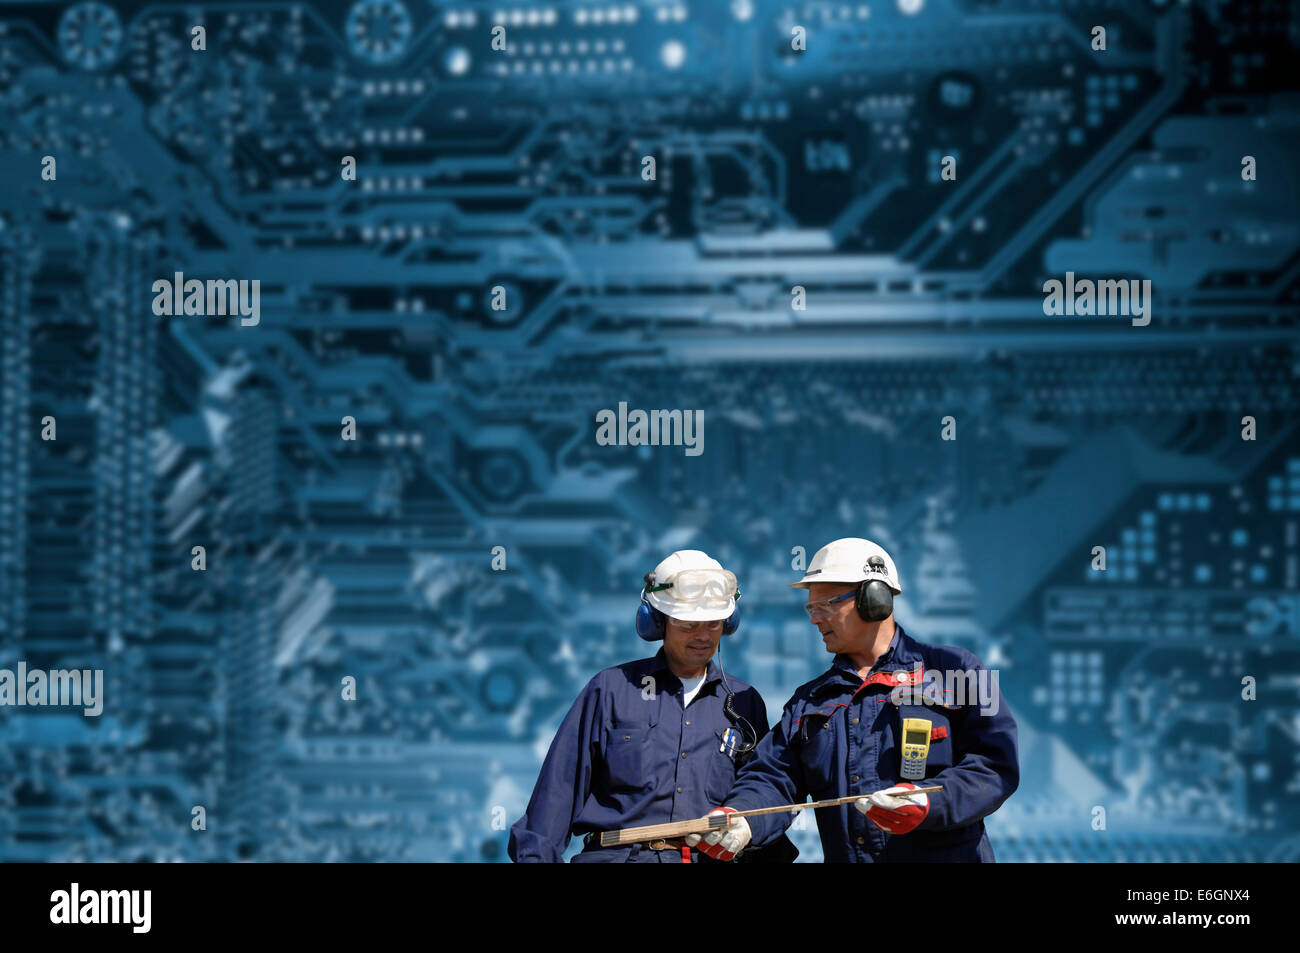 engineering and technology concept - Stock Image